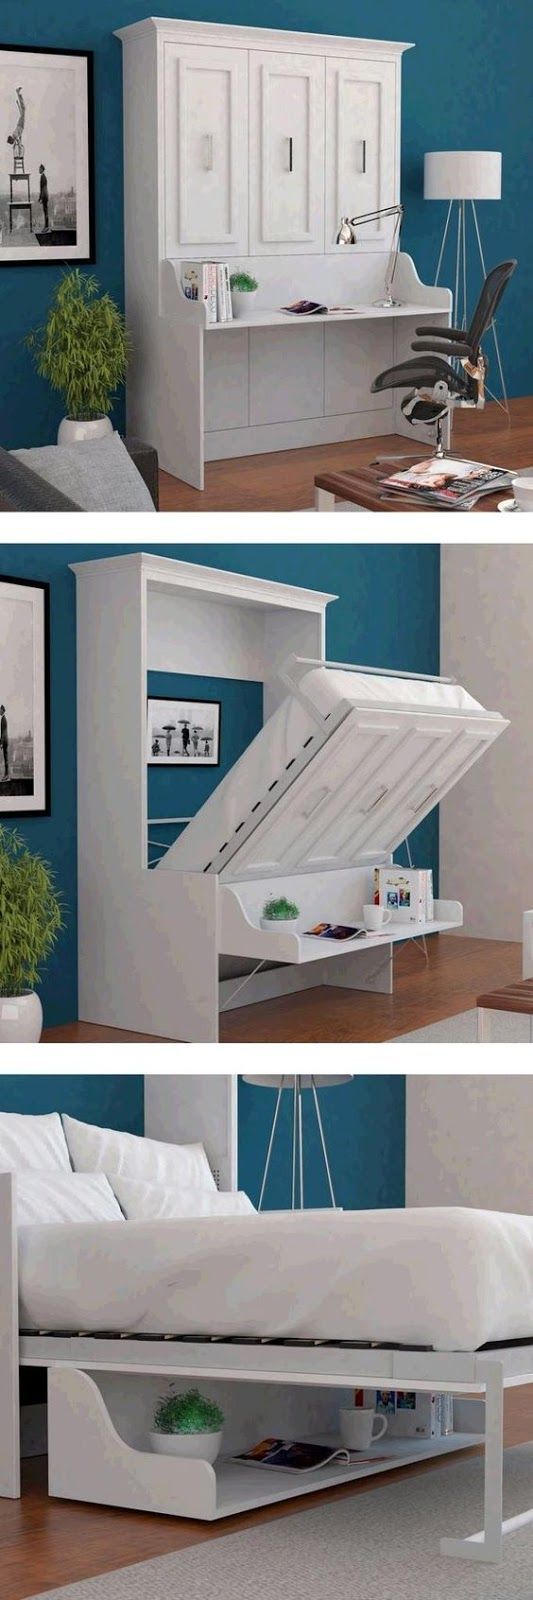 25 best ideas about hidden bed on pinterest small spare for Tiny home furnishings